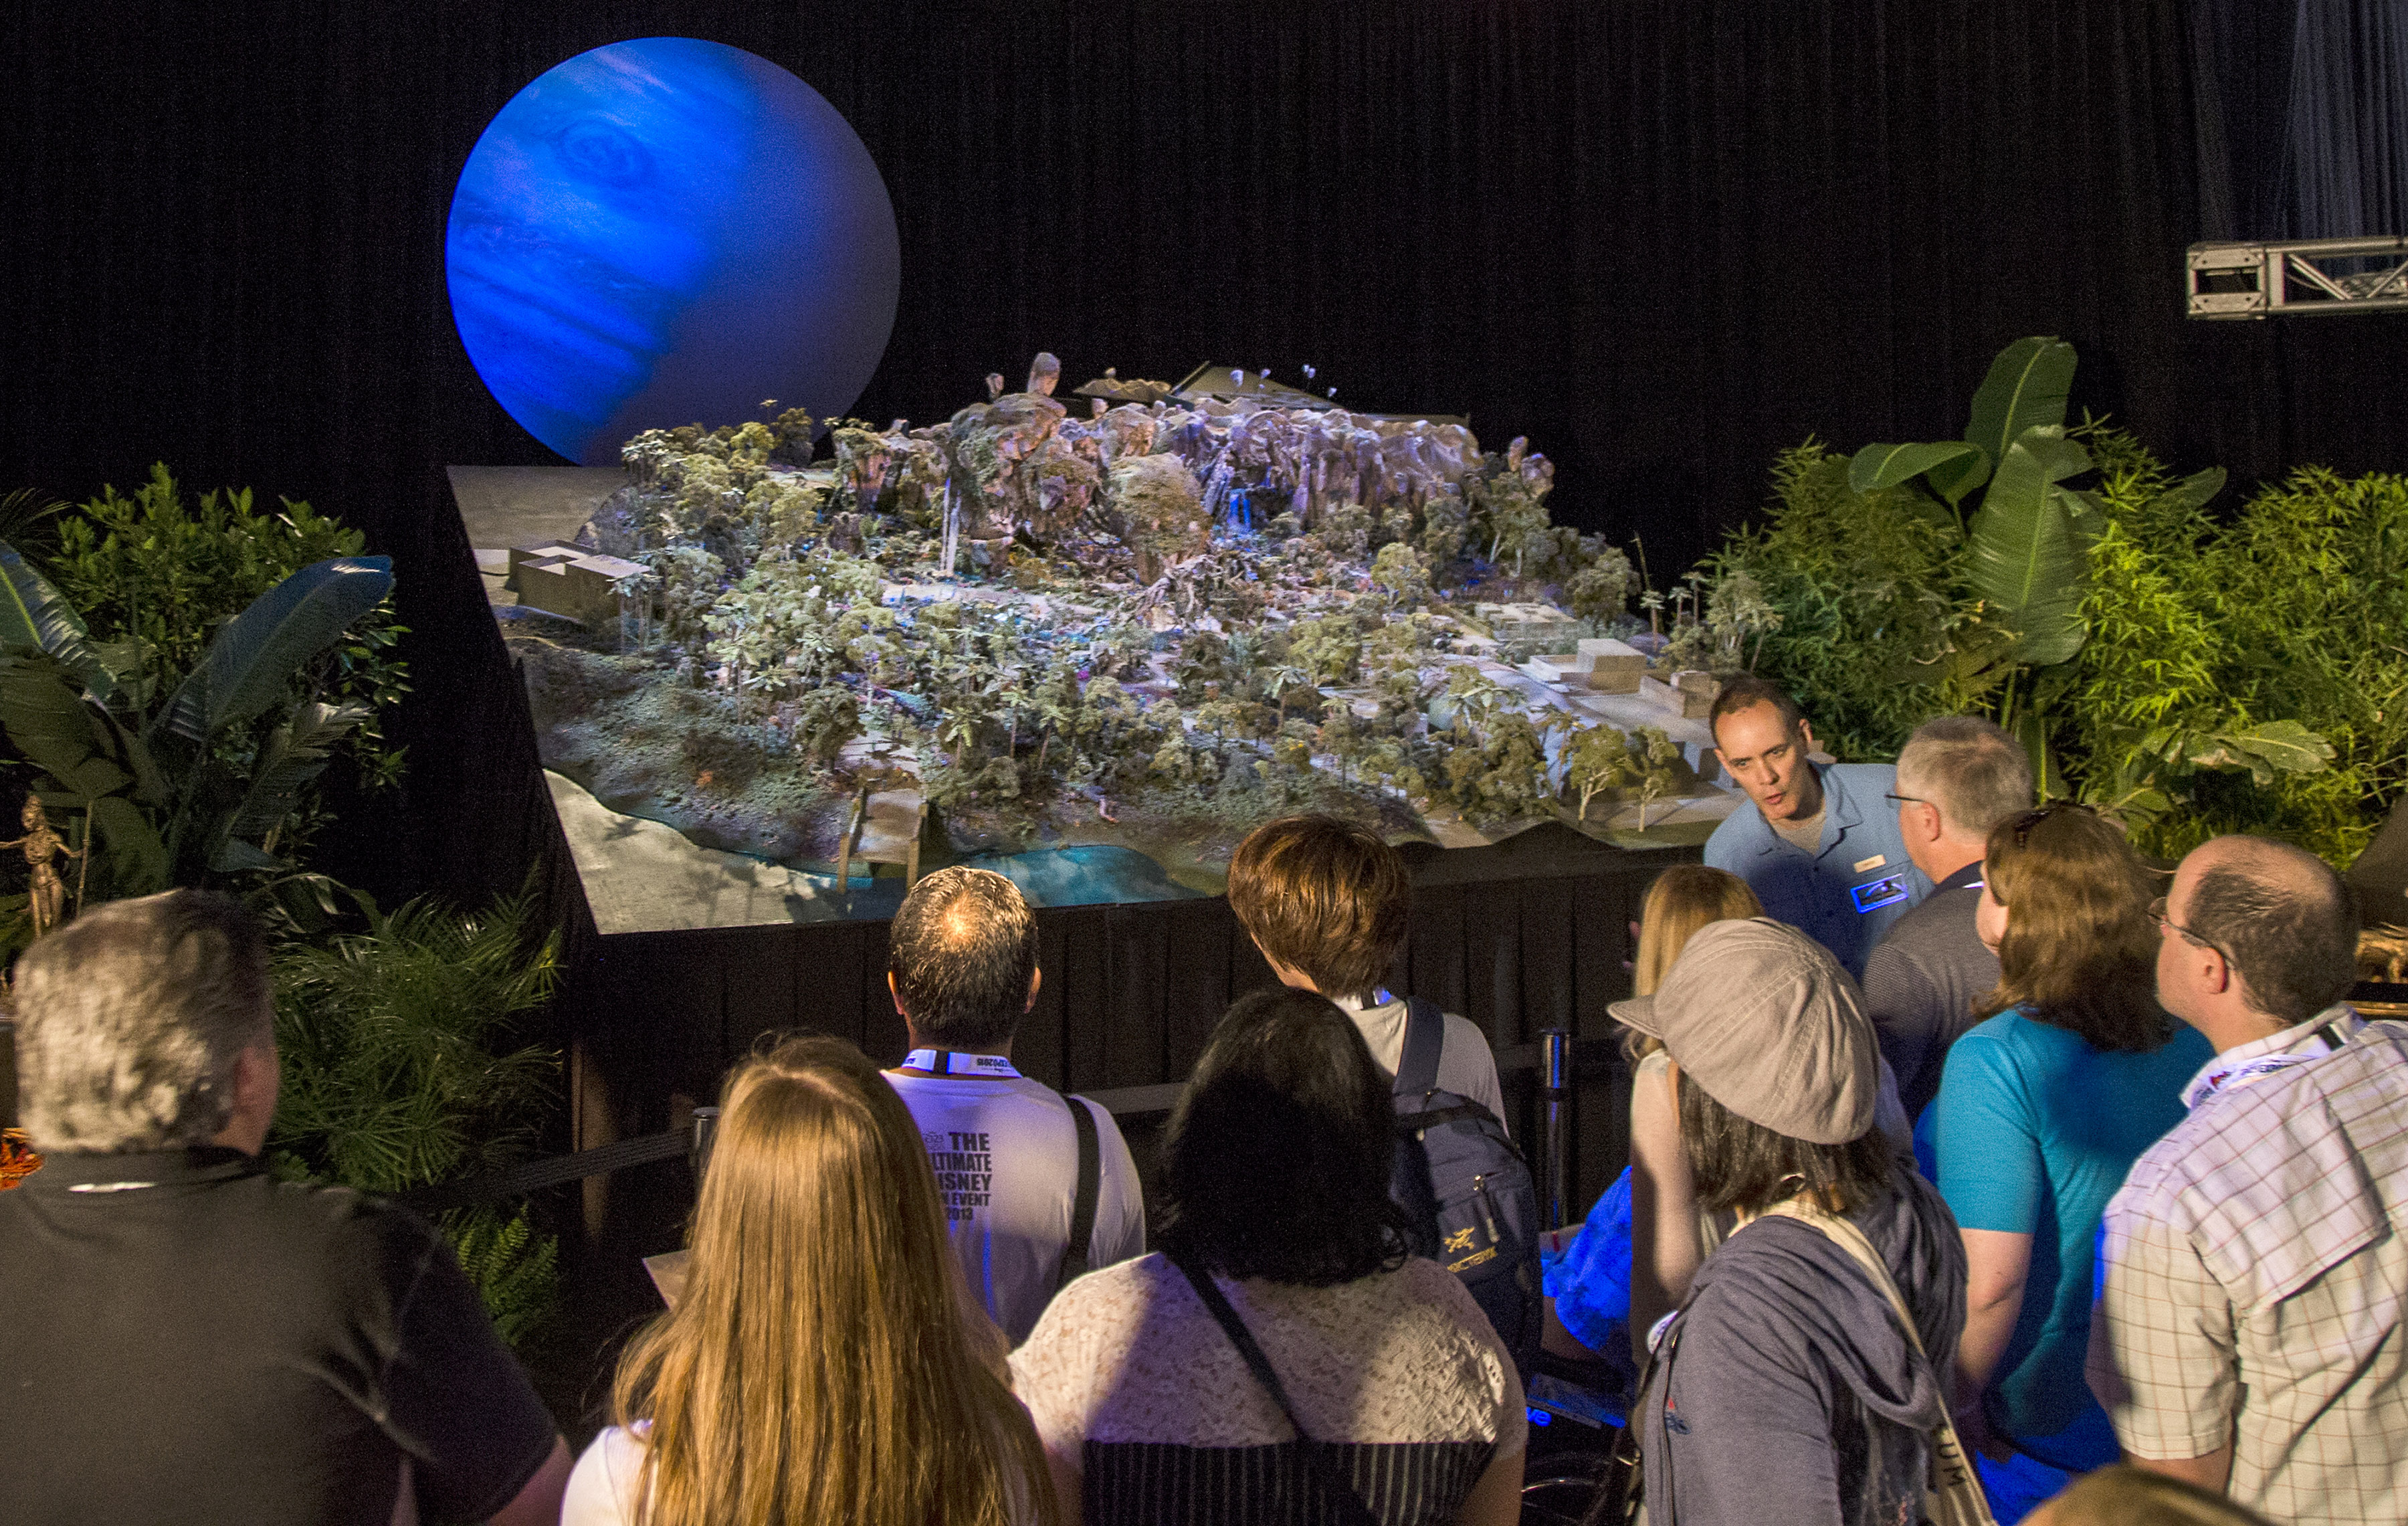 Photos Walt Disney Imagineering Displays Avatar Project Model At D23 Expo